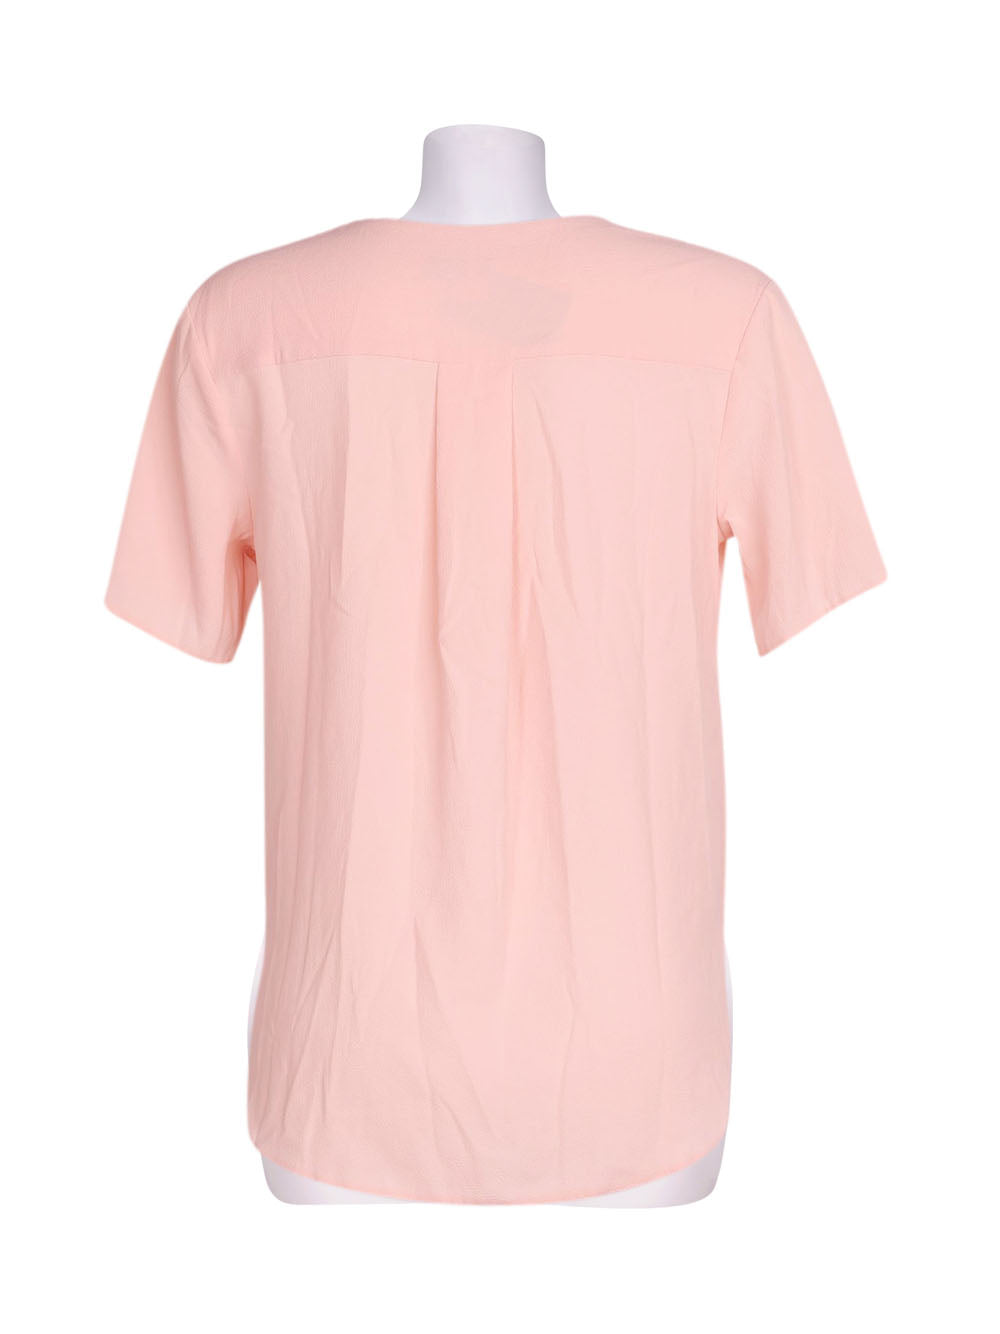 Back photo of Preloved Asos Pink Woman's shirt - size 6/XS